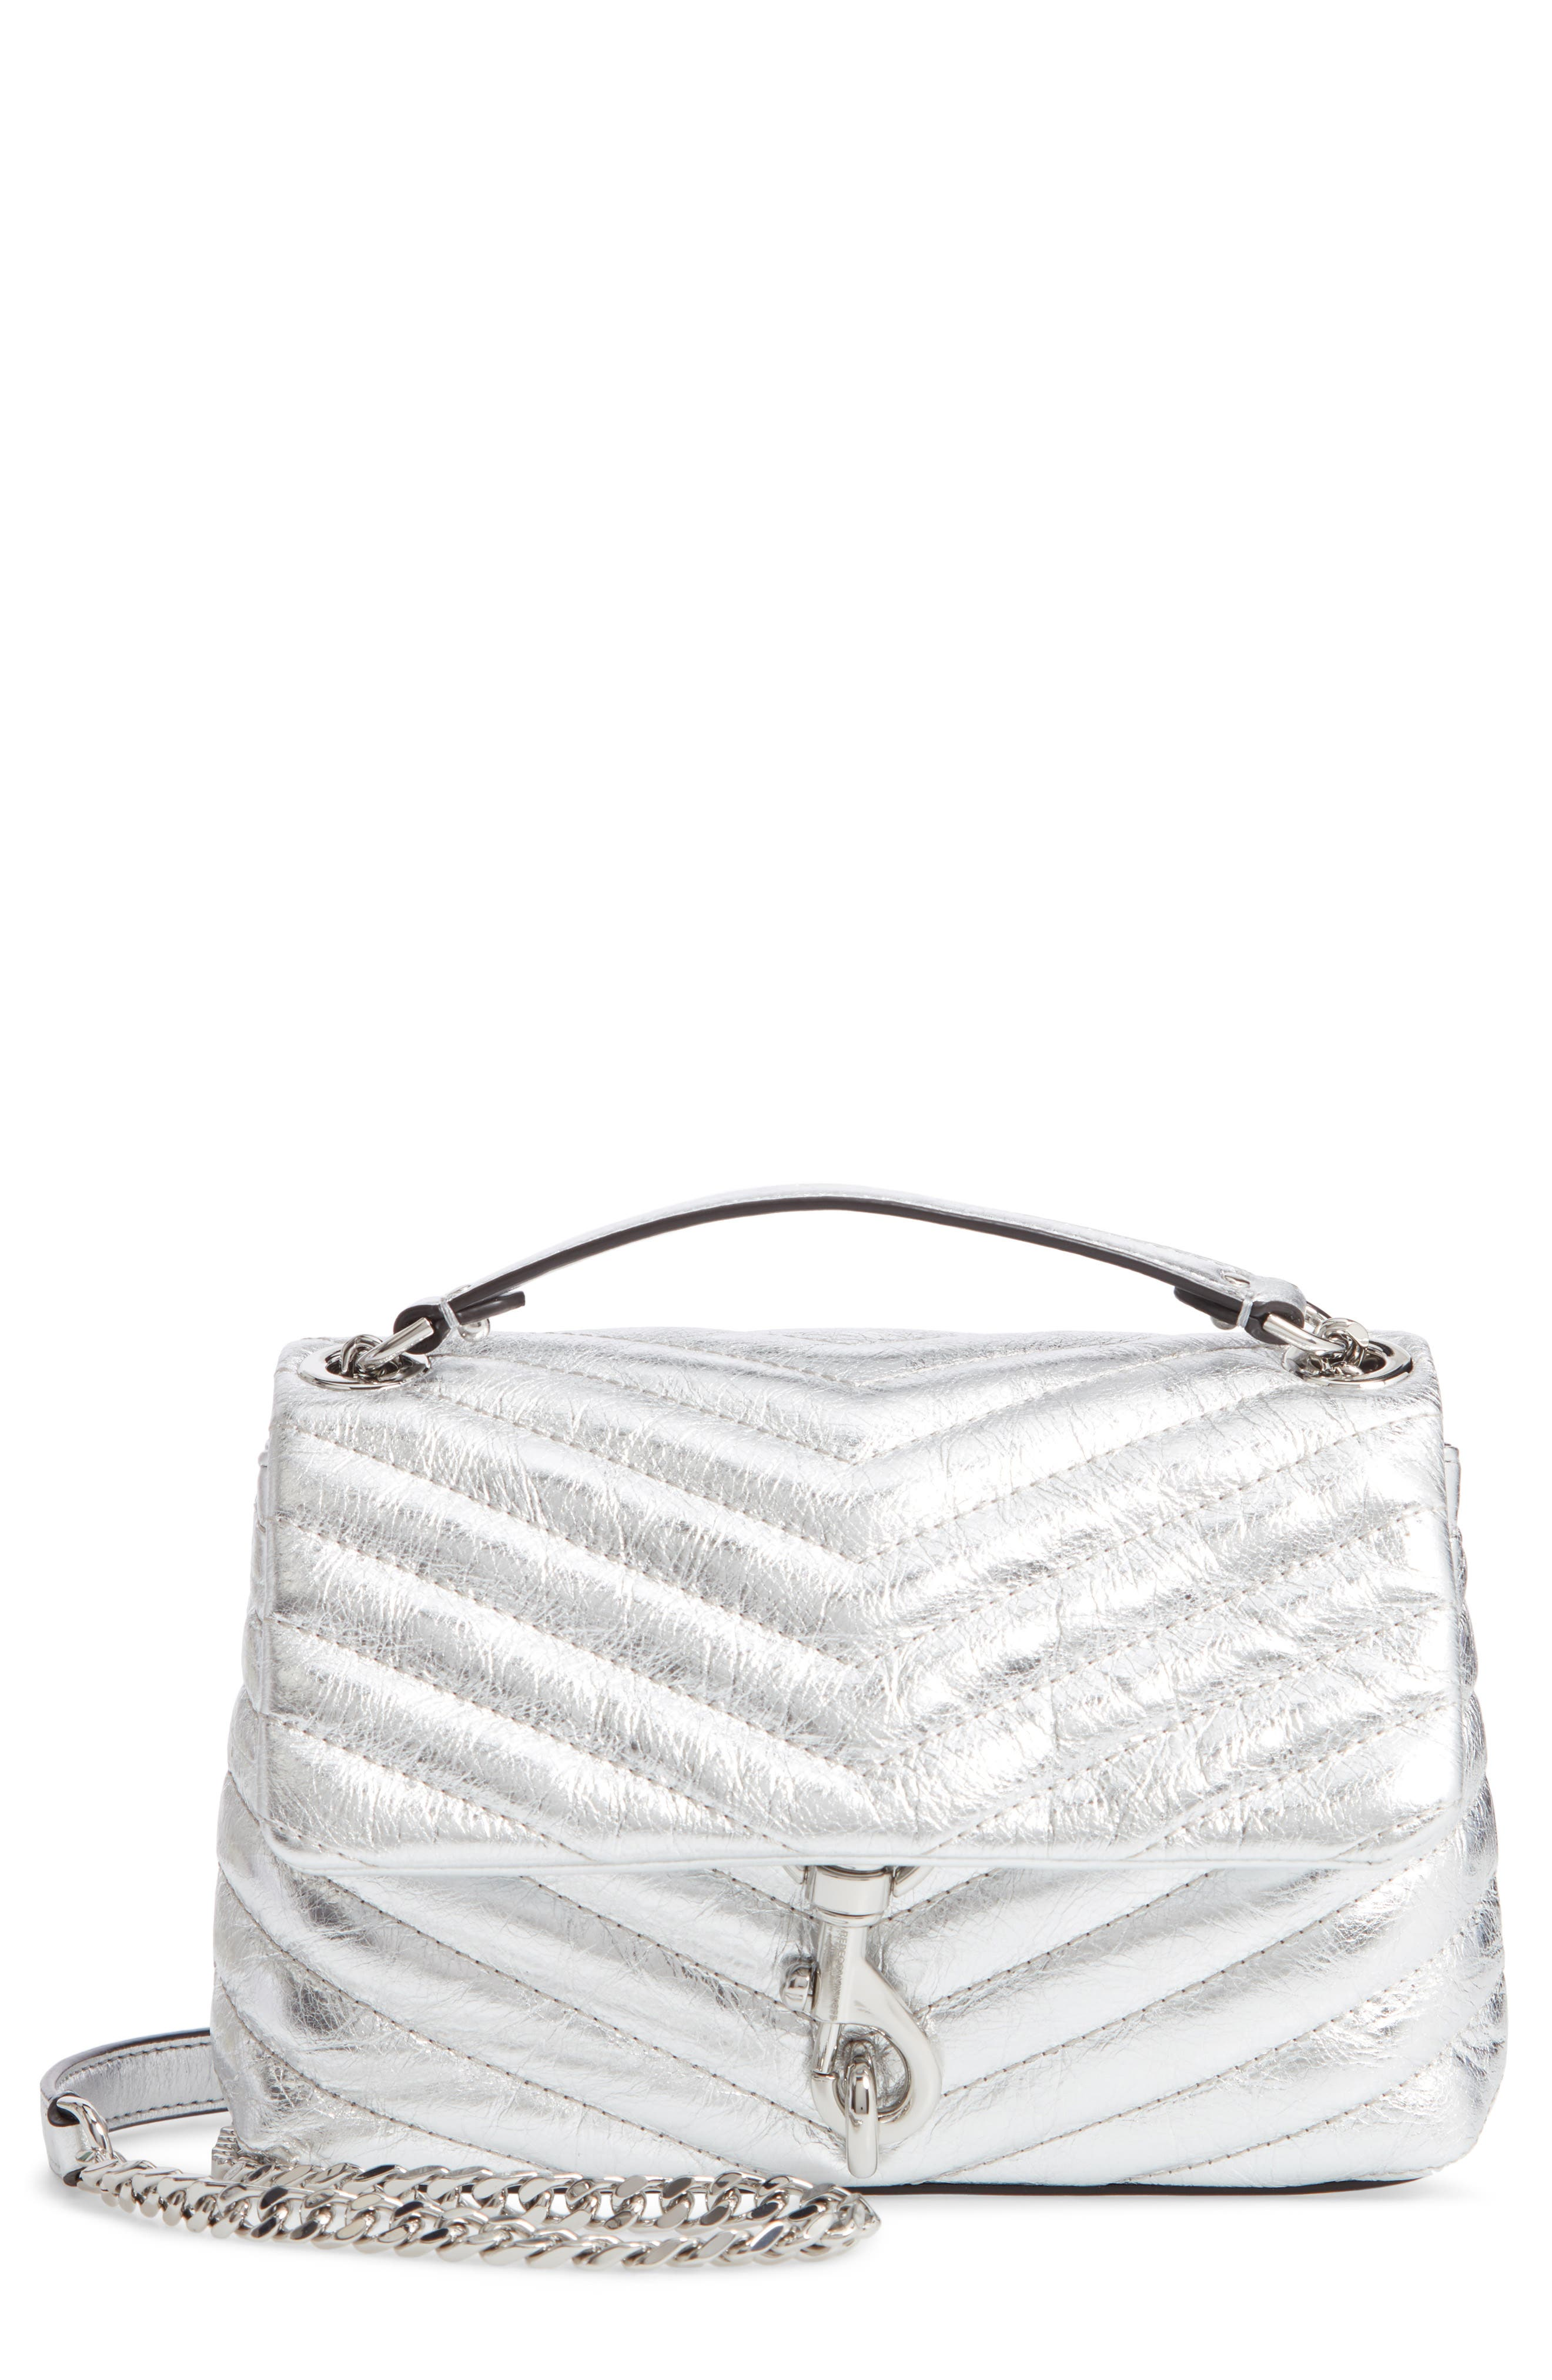 REBECCA MINKOFF, Edie Metallic Leather Shoulder Bag, Main thumbnail 1, color, SILVER